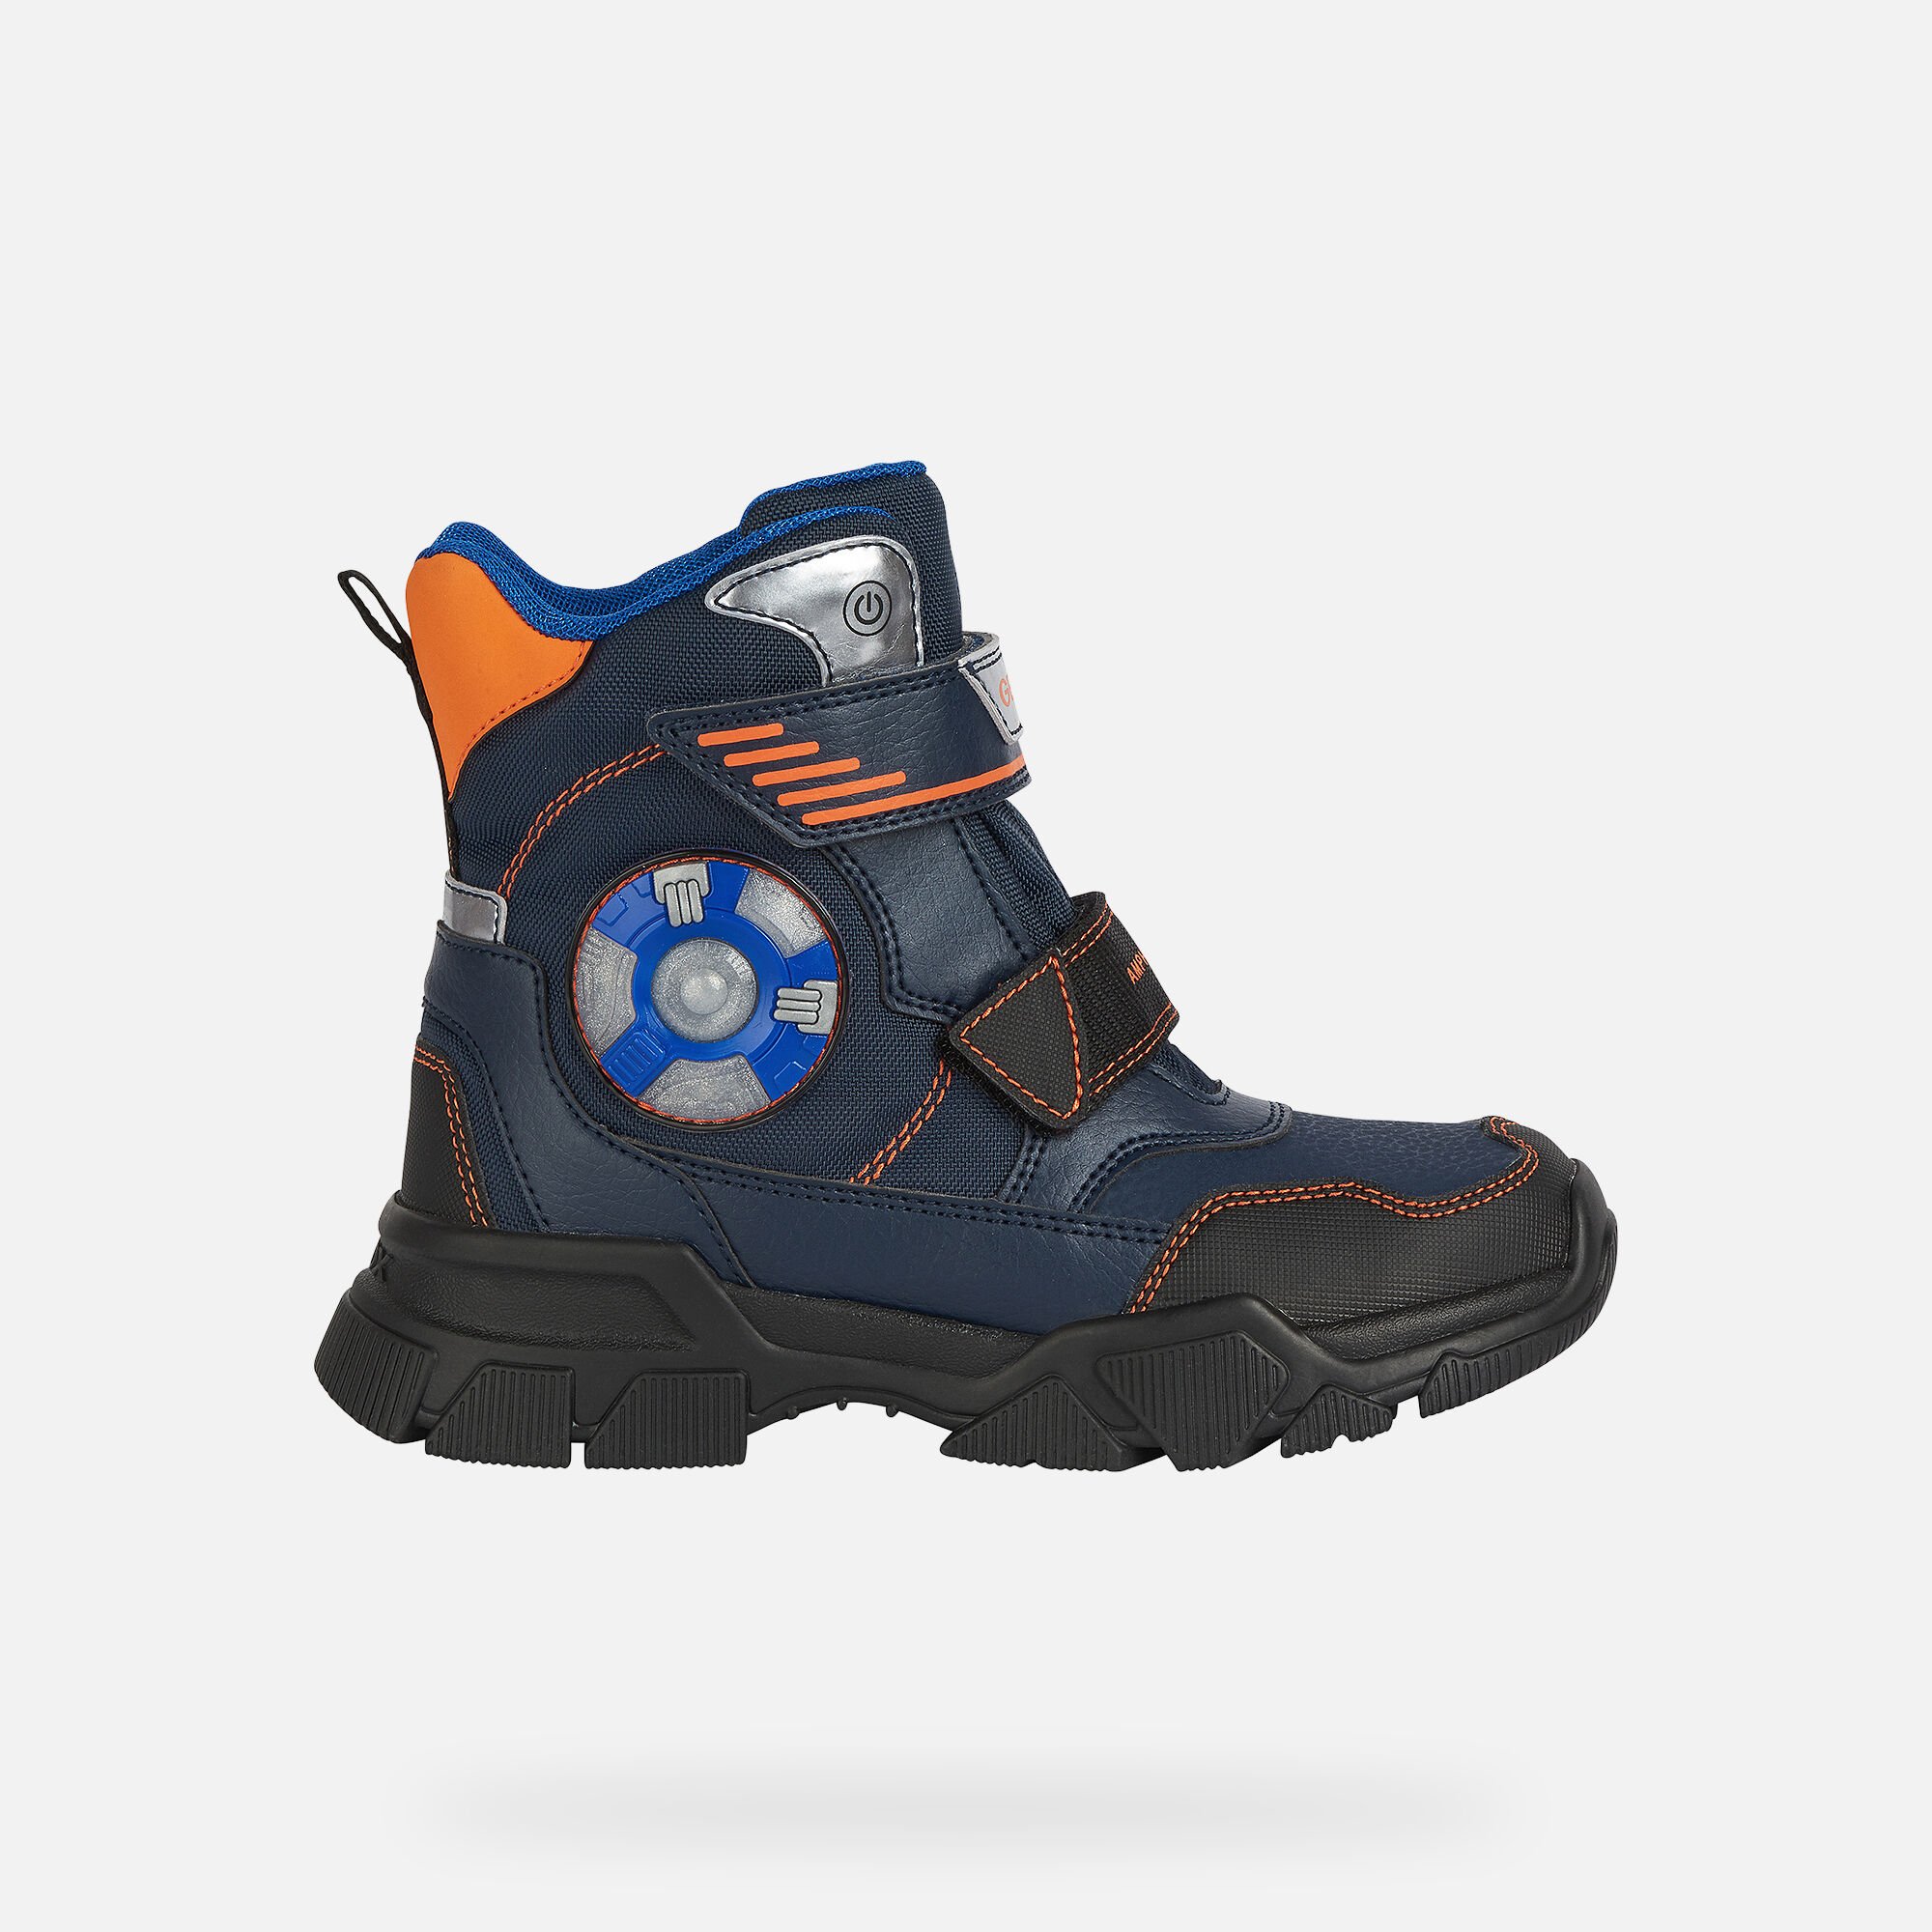 NEVEGAL ABX BOY - LIGHT-UP SHOES from